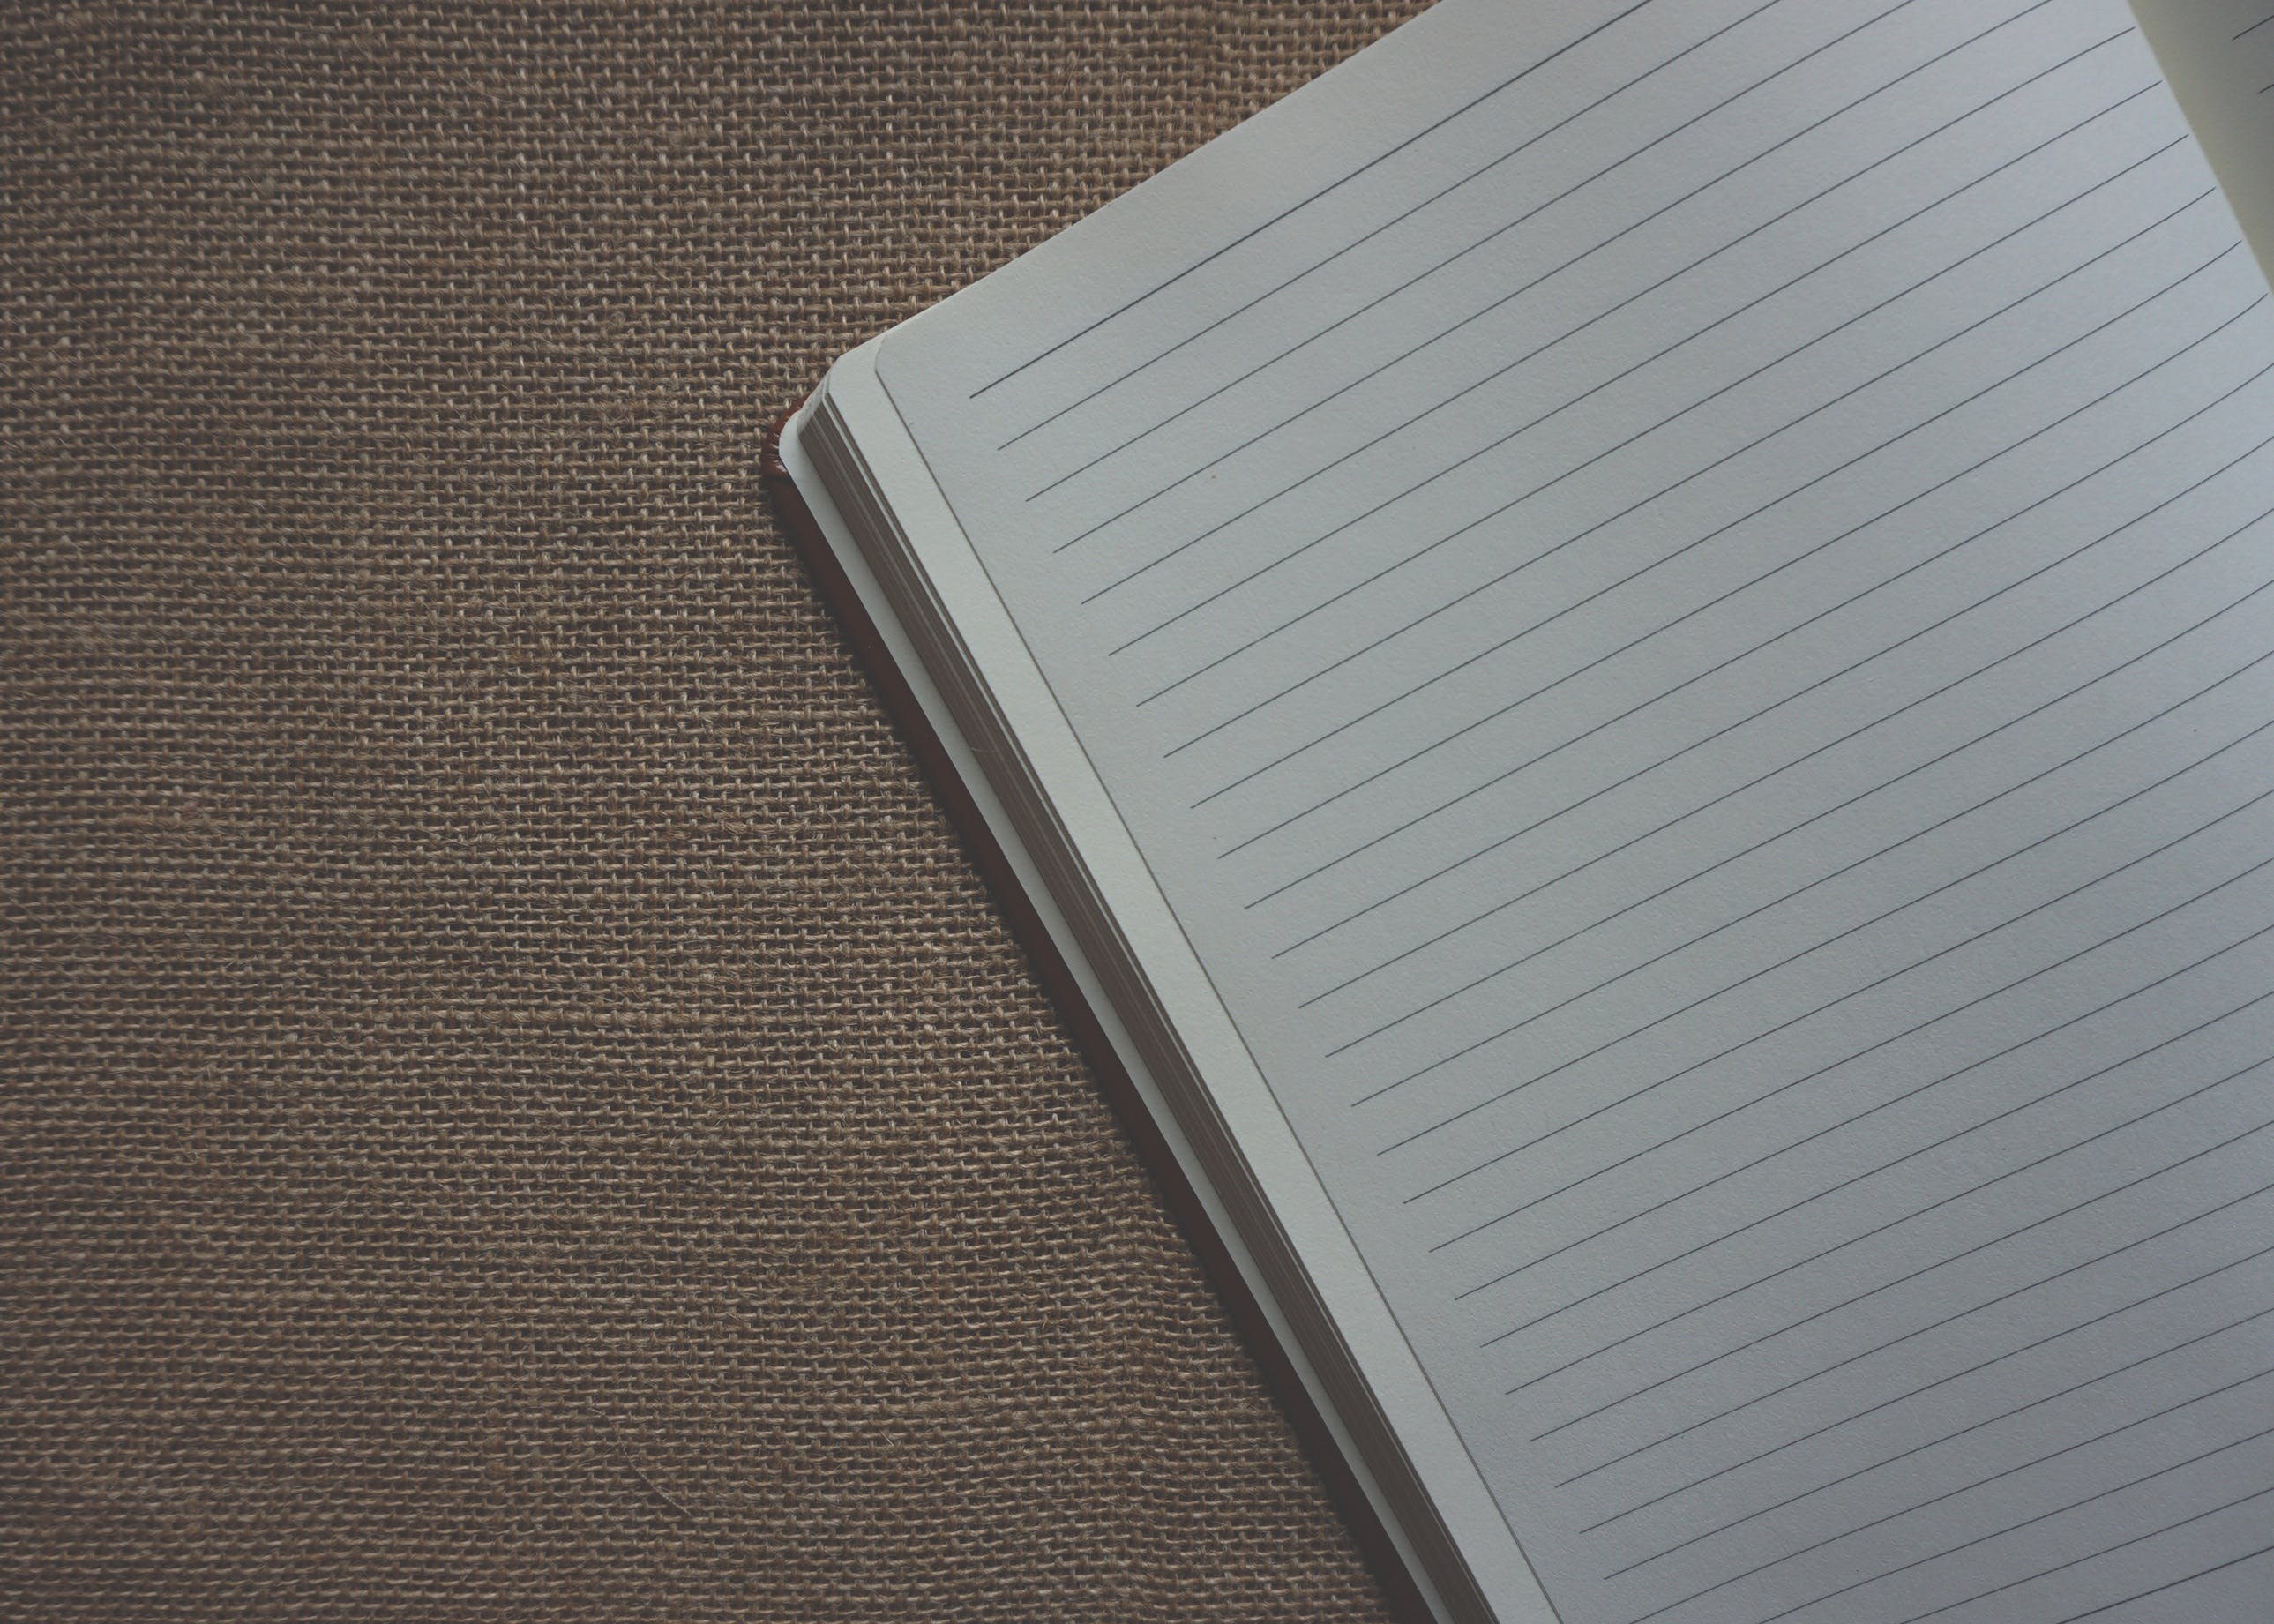 Black Lined Paper on Gray Cloth